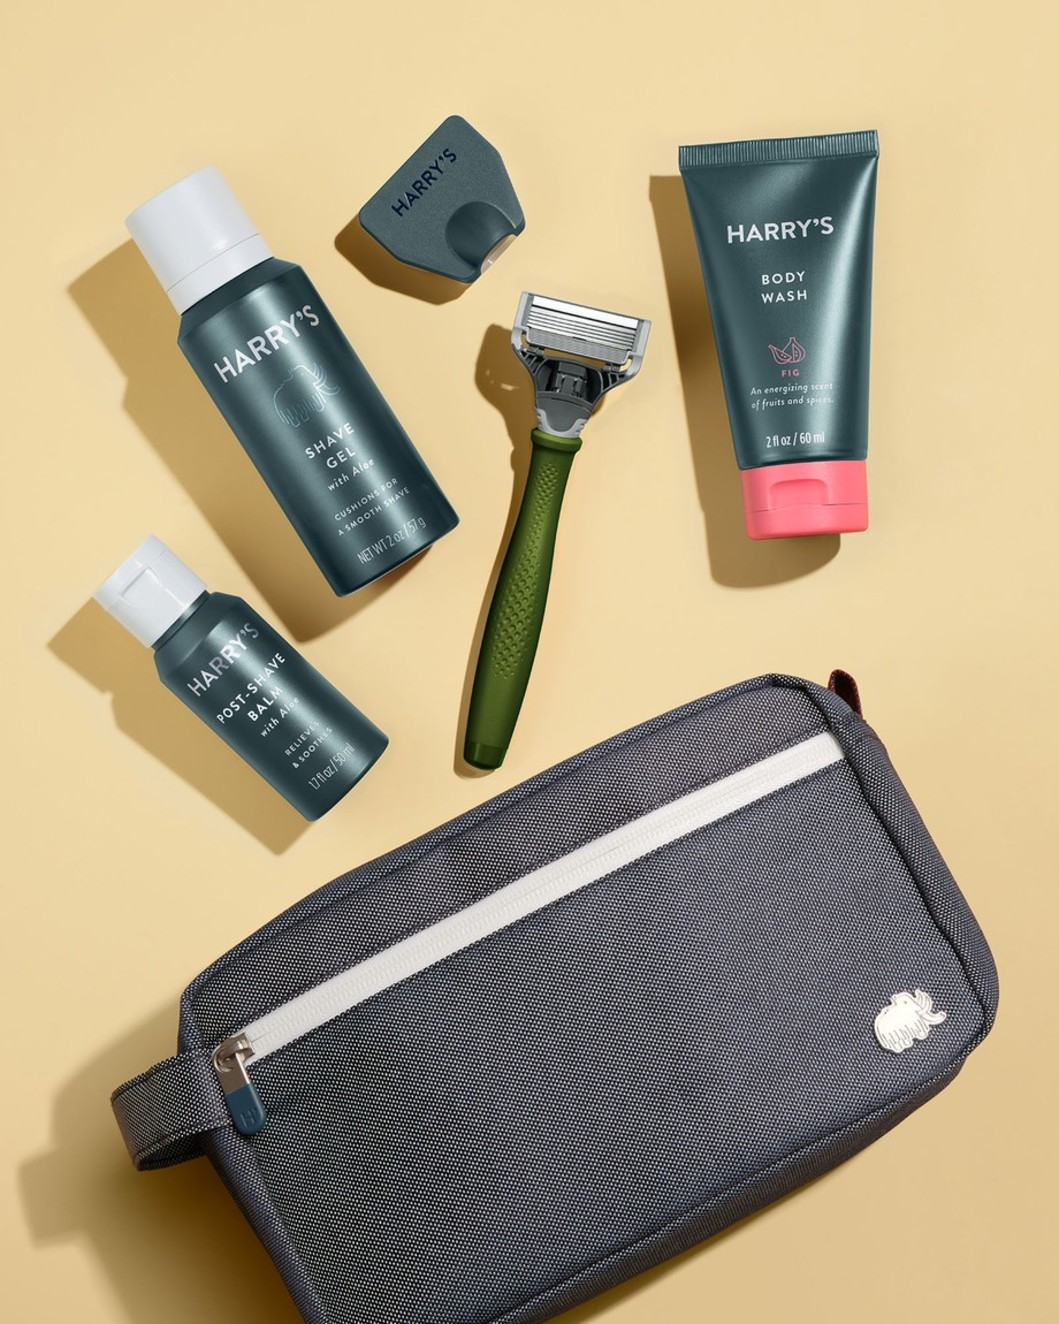 Deluxe Travel Kit - Olive Handle, Fig Body Wash